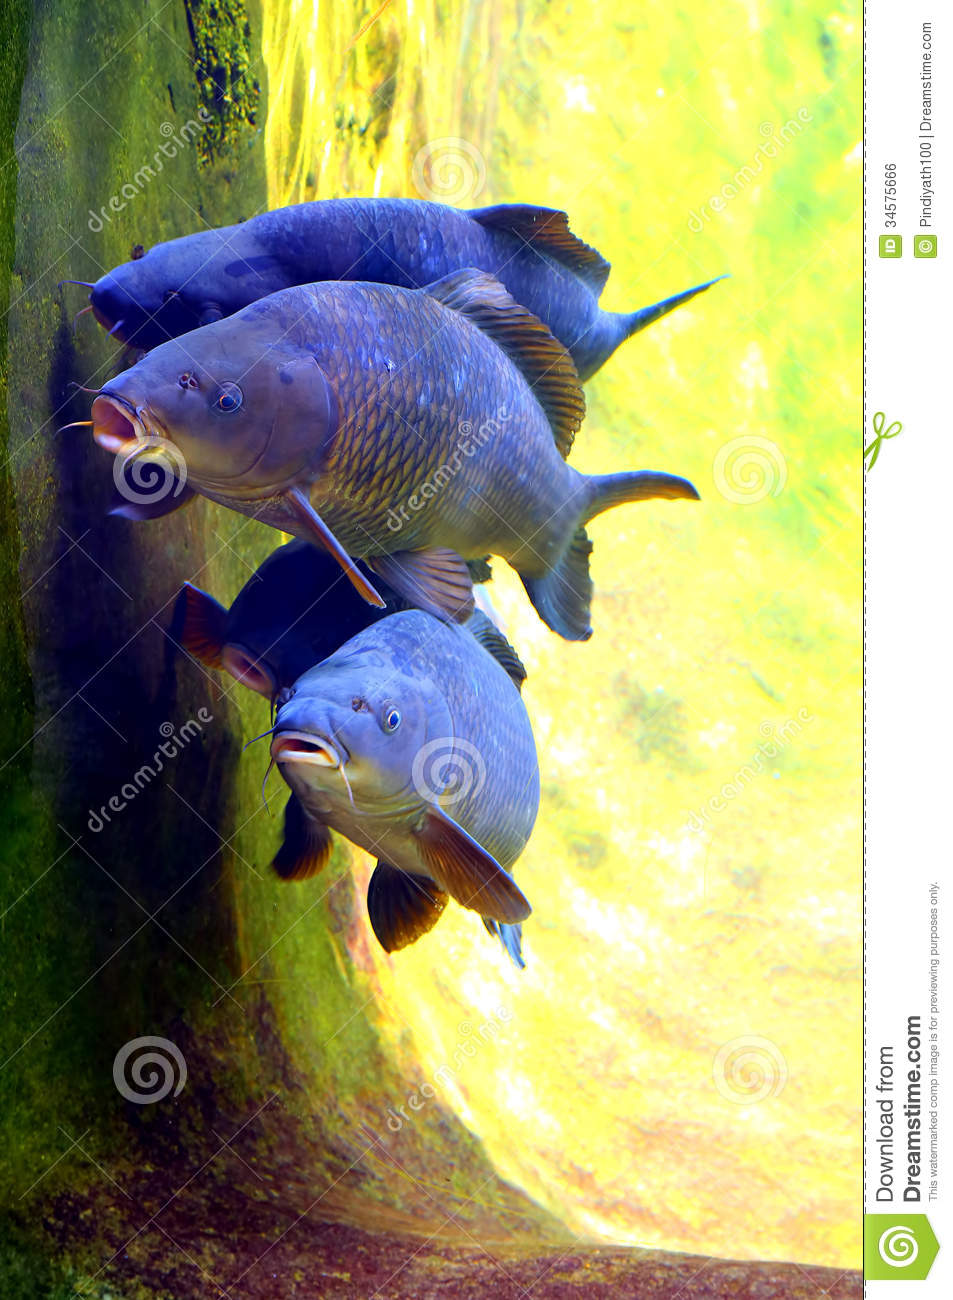 Koi or carp fish stock photo image of colors pair for Pet koi fish tank